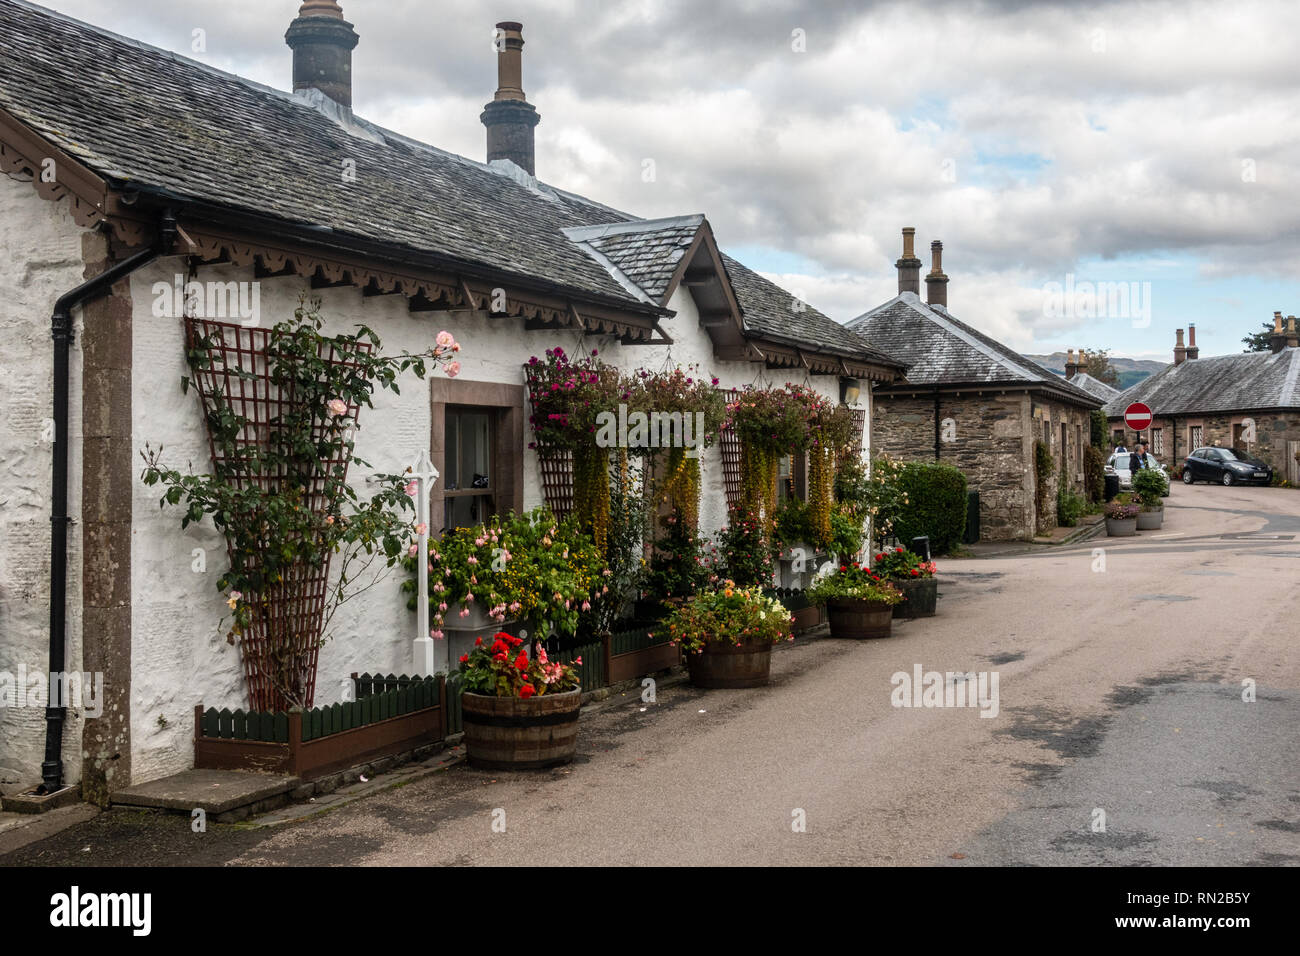 Luss, Scotland, UK - September 28, 2017: Climbing flowers and hanging baskets decorate quaint traditional cottages in the village of Luss in Scotland' - Stock Image